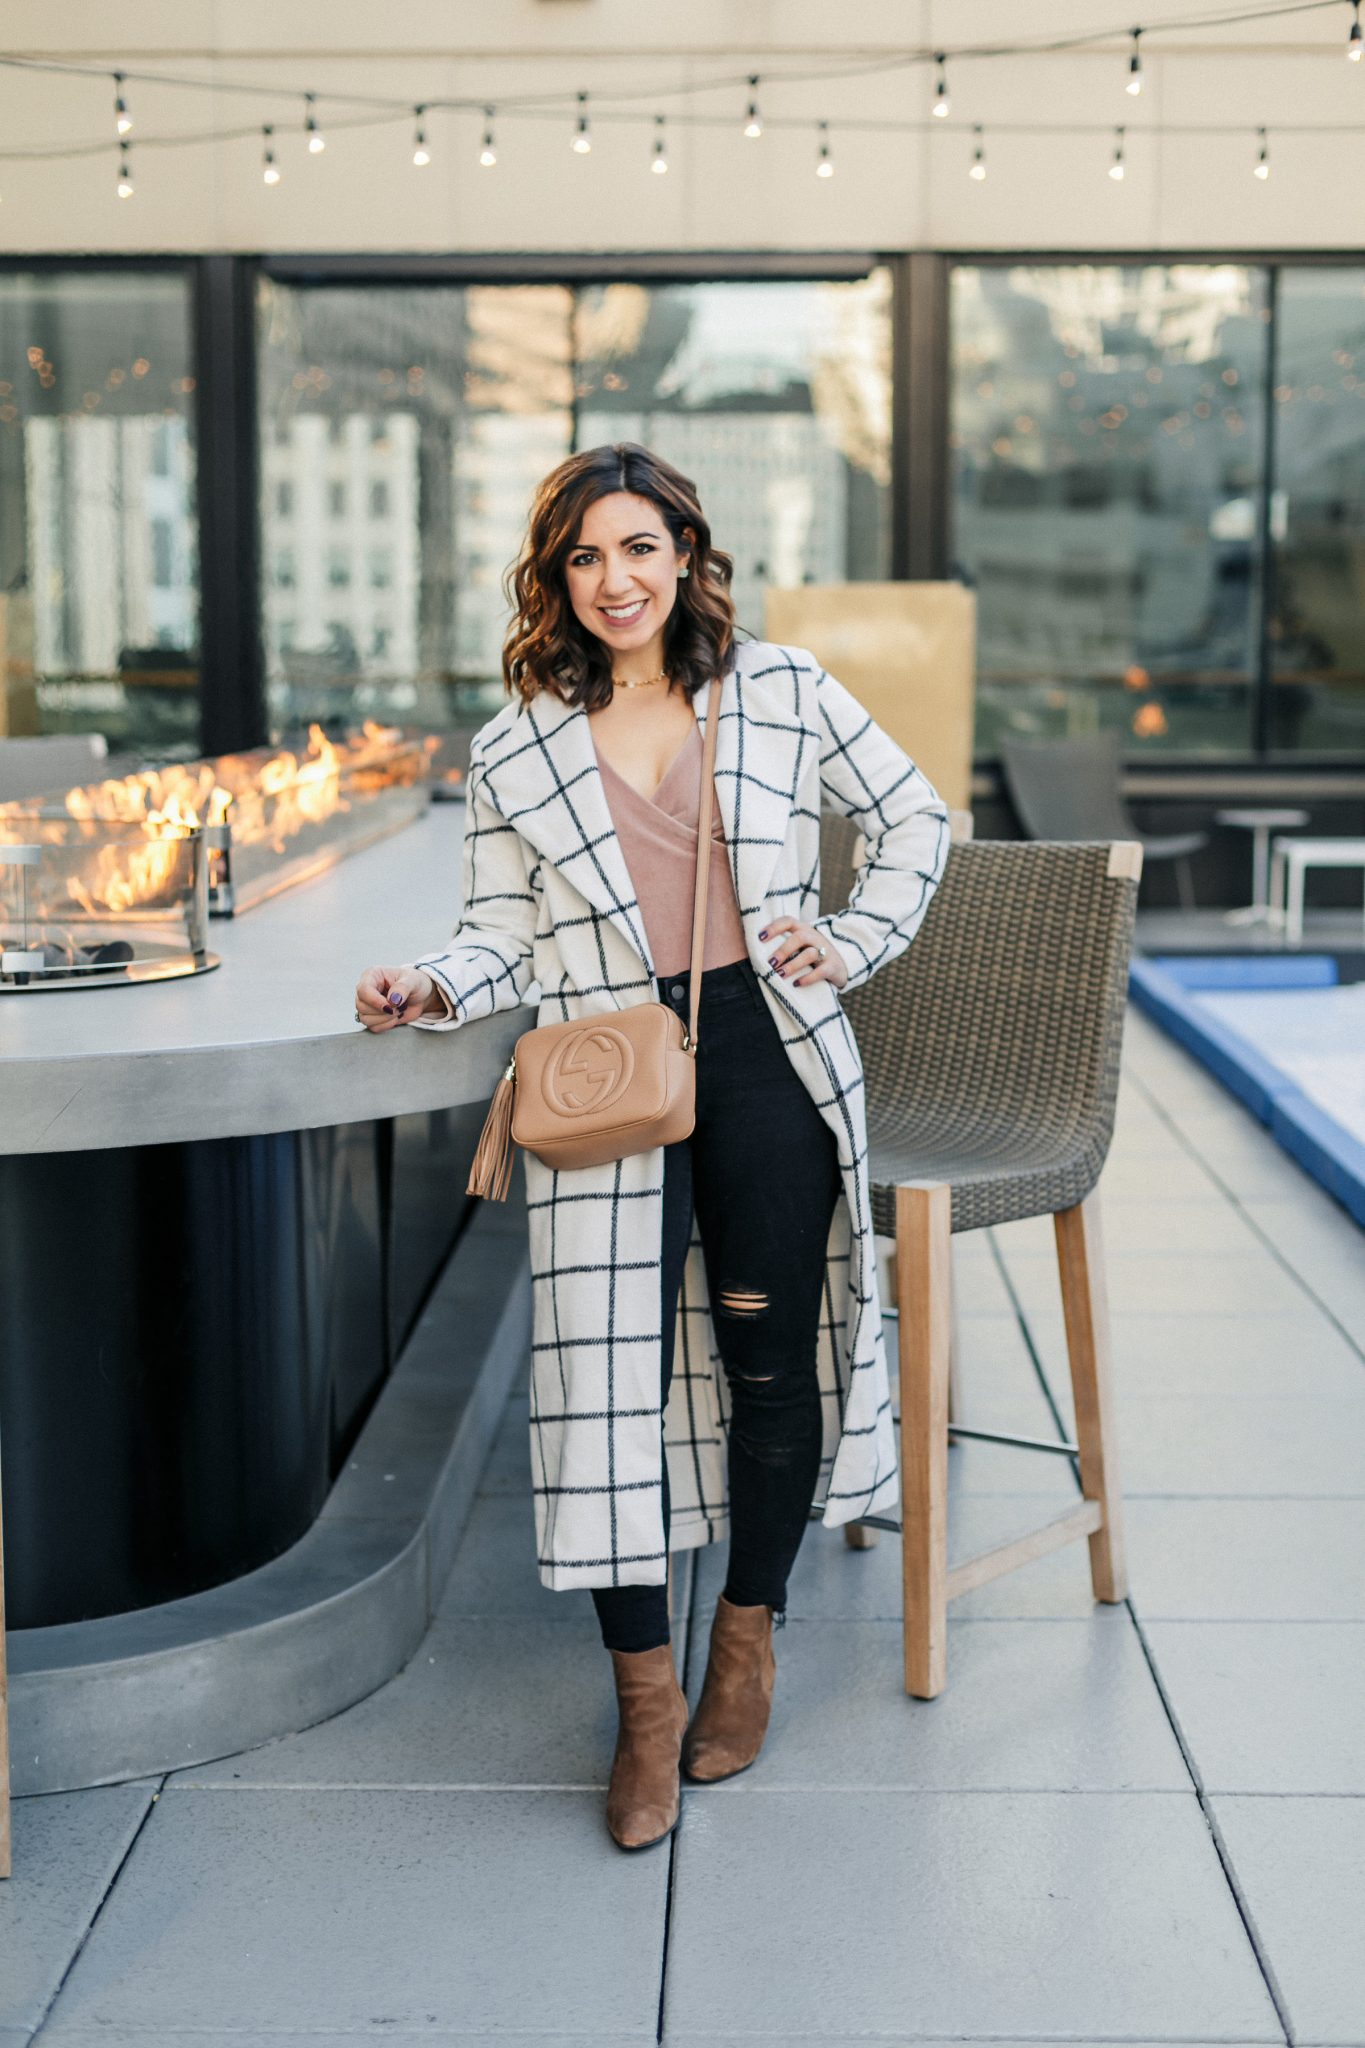 Lifestyle blogger Roxanne of Glass of Glam wearing a windowpane duster coat, velvet bodysuit, distressed denim, and a Gucci soho disco bag - SheIn windowpane duster coat by popular Washington fashion blogger Glass of Glam